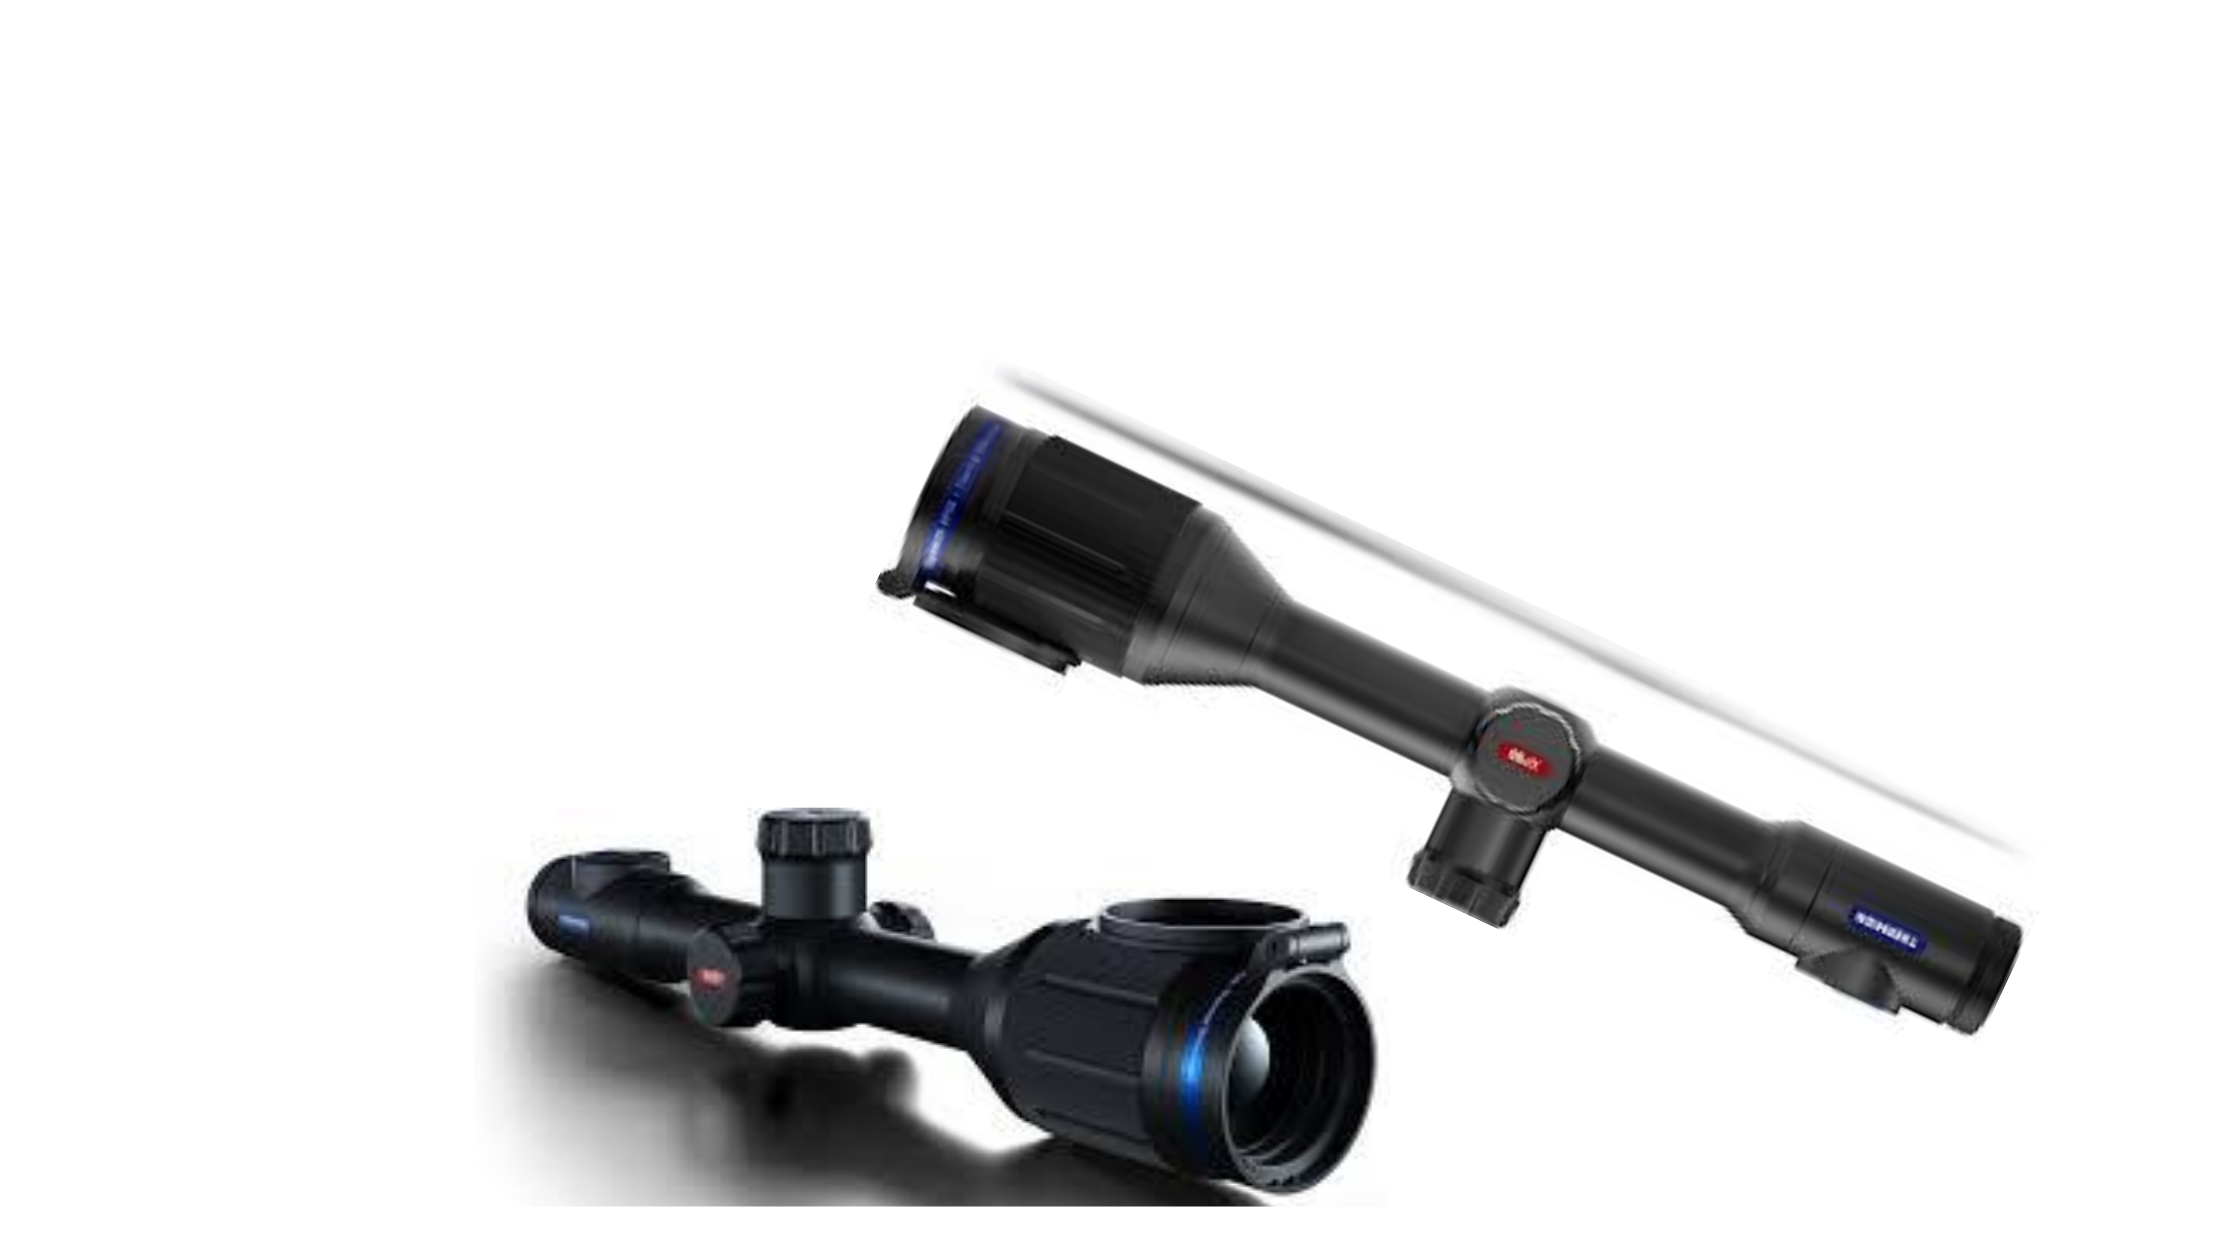 A side-by-side pair of black Pulsar ThermionXP50 thermal scope for coyote hunting